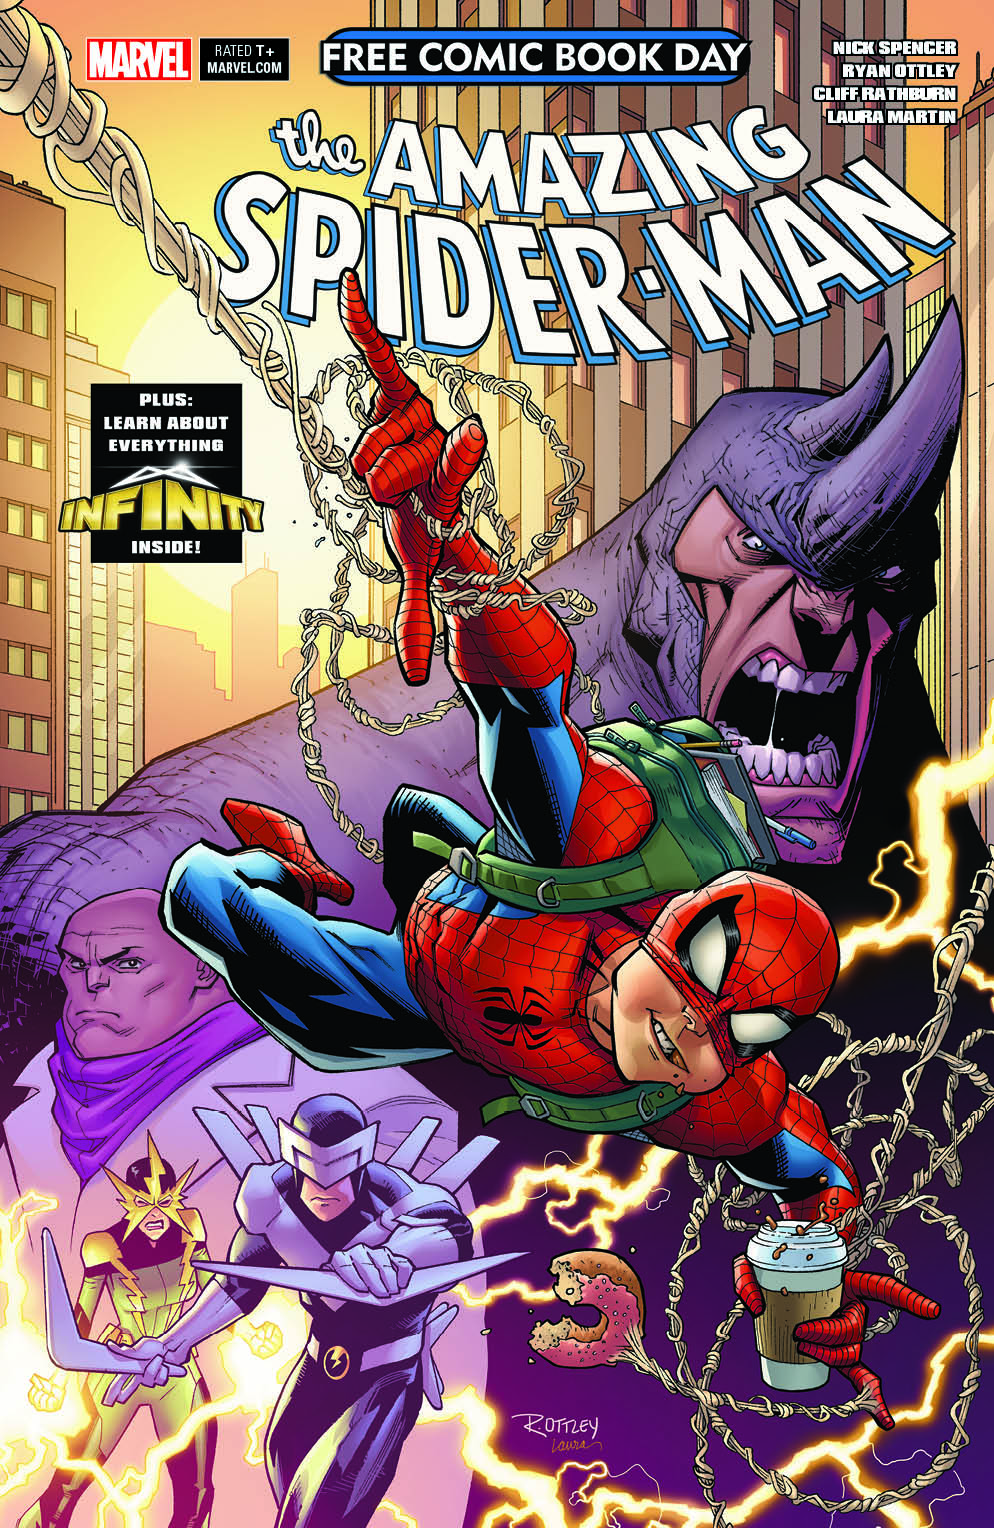 image free comic book day vol 2018 amazing spider man jpg marvel